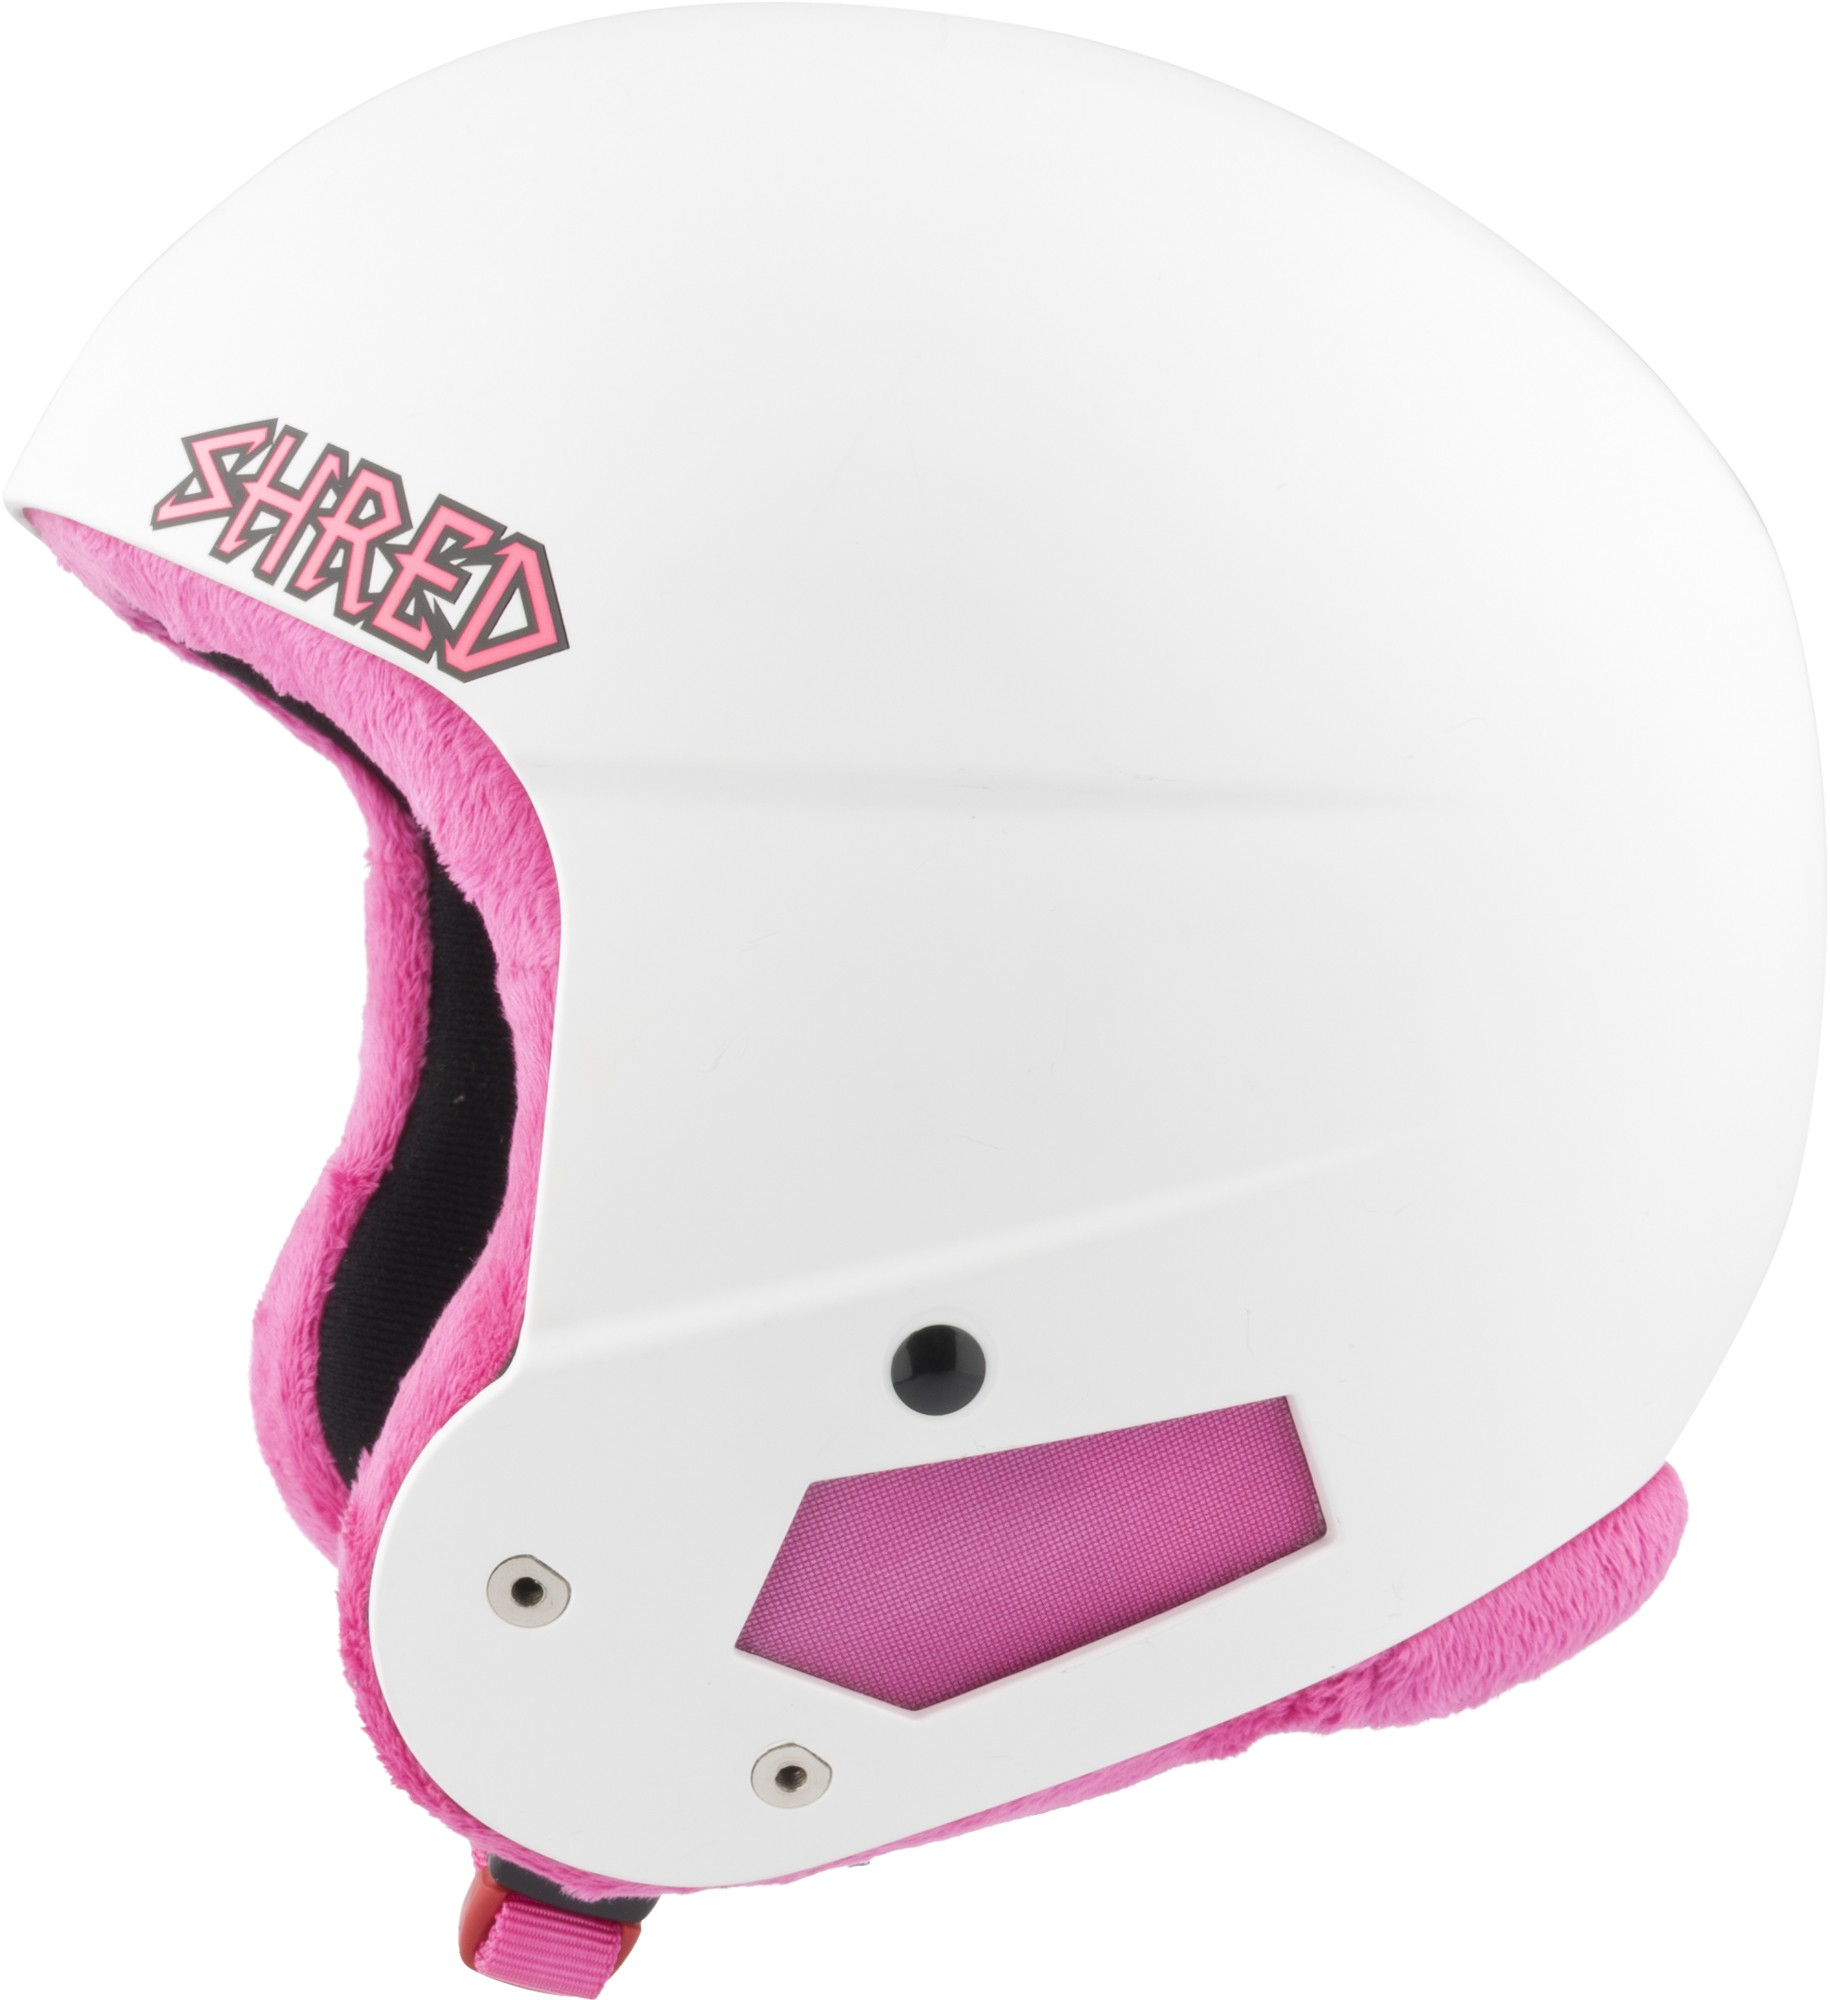 Shred Brain Bucket Mini WHITE PINK ski helmet, 2017